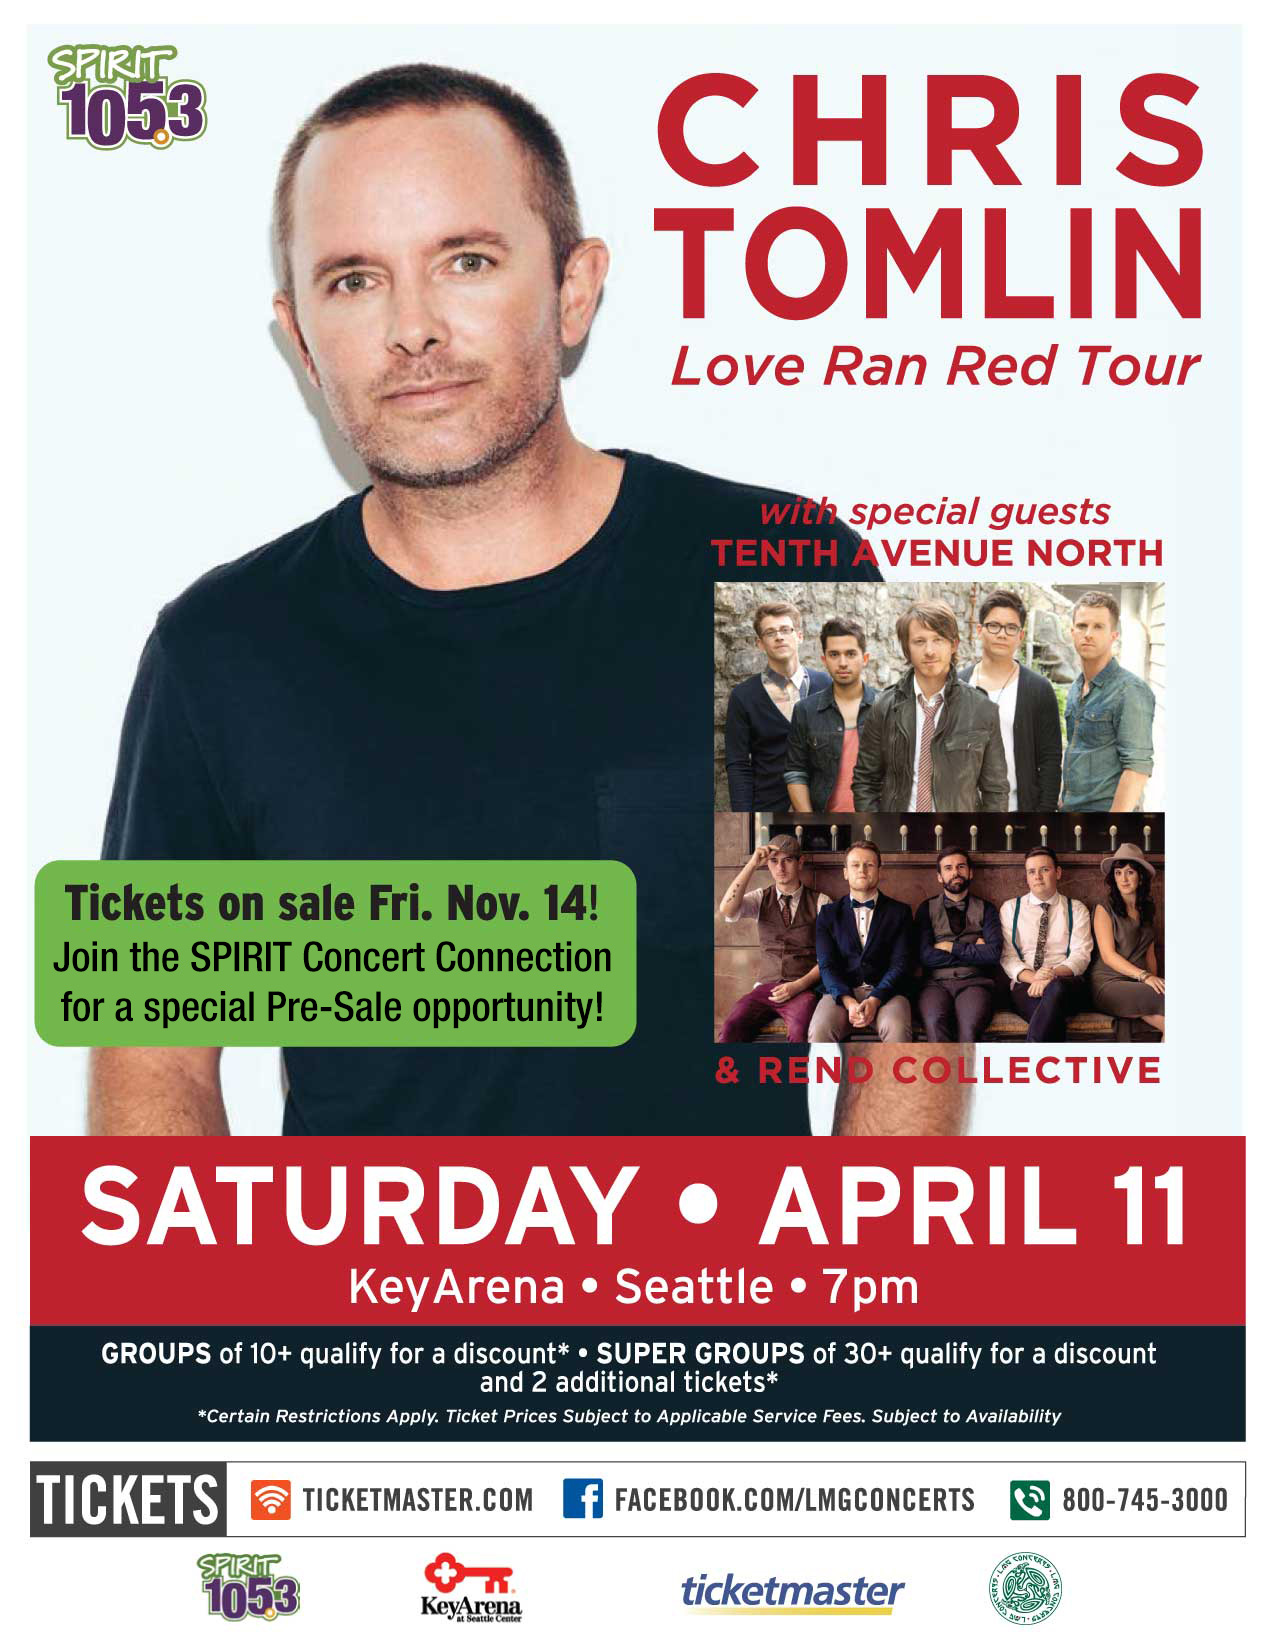 Chris Tomlin's 'Love Ran Red' Tour, featuring Tenth Avenue North and Rend Collective Stops in Seattle!